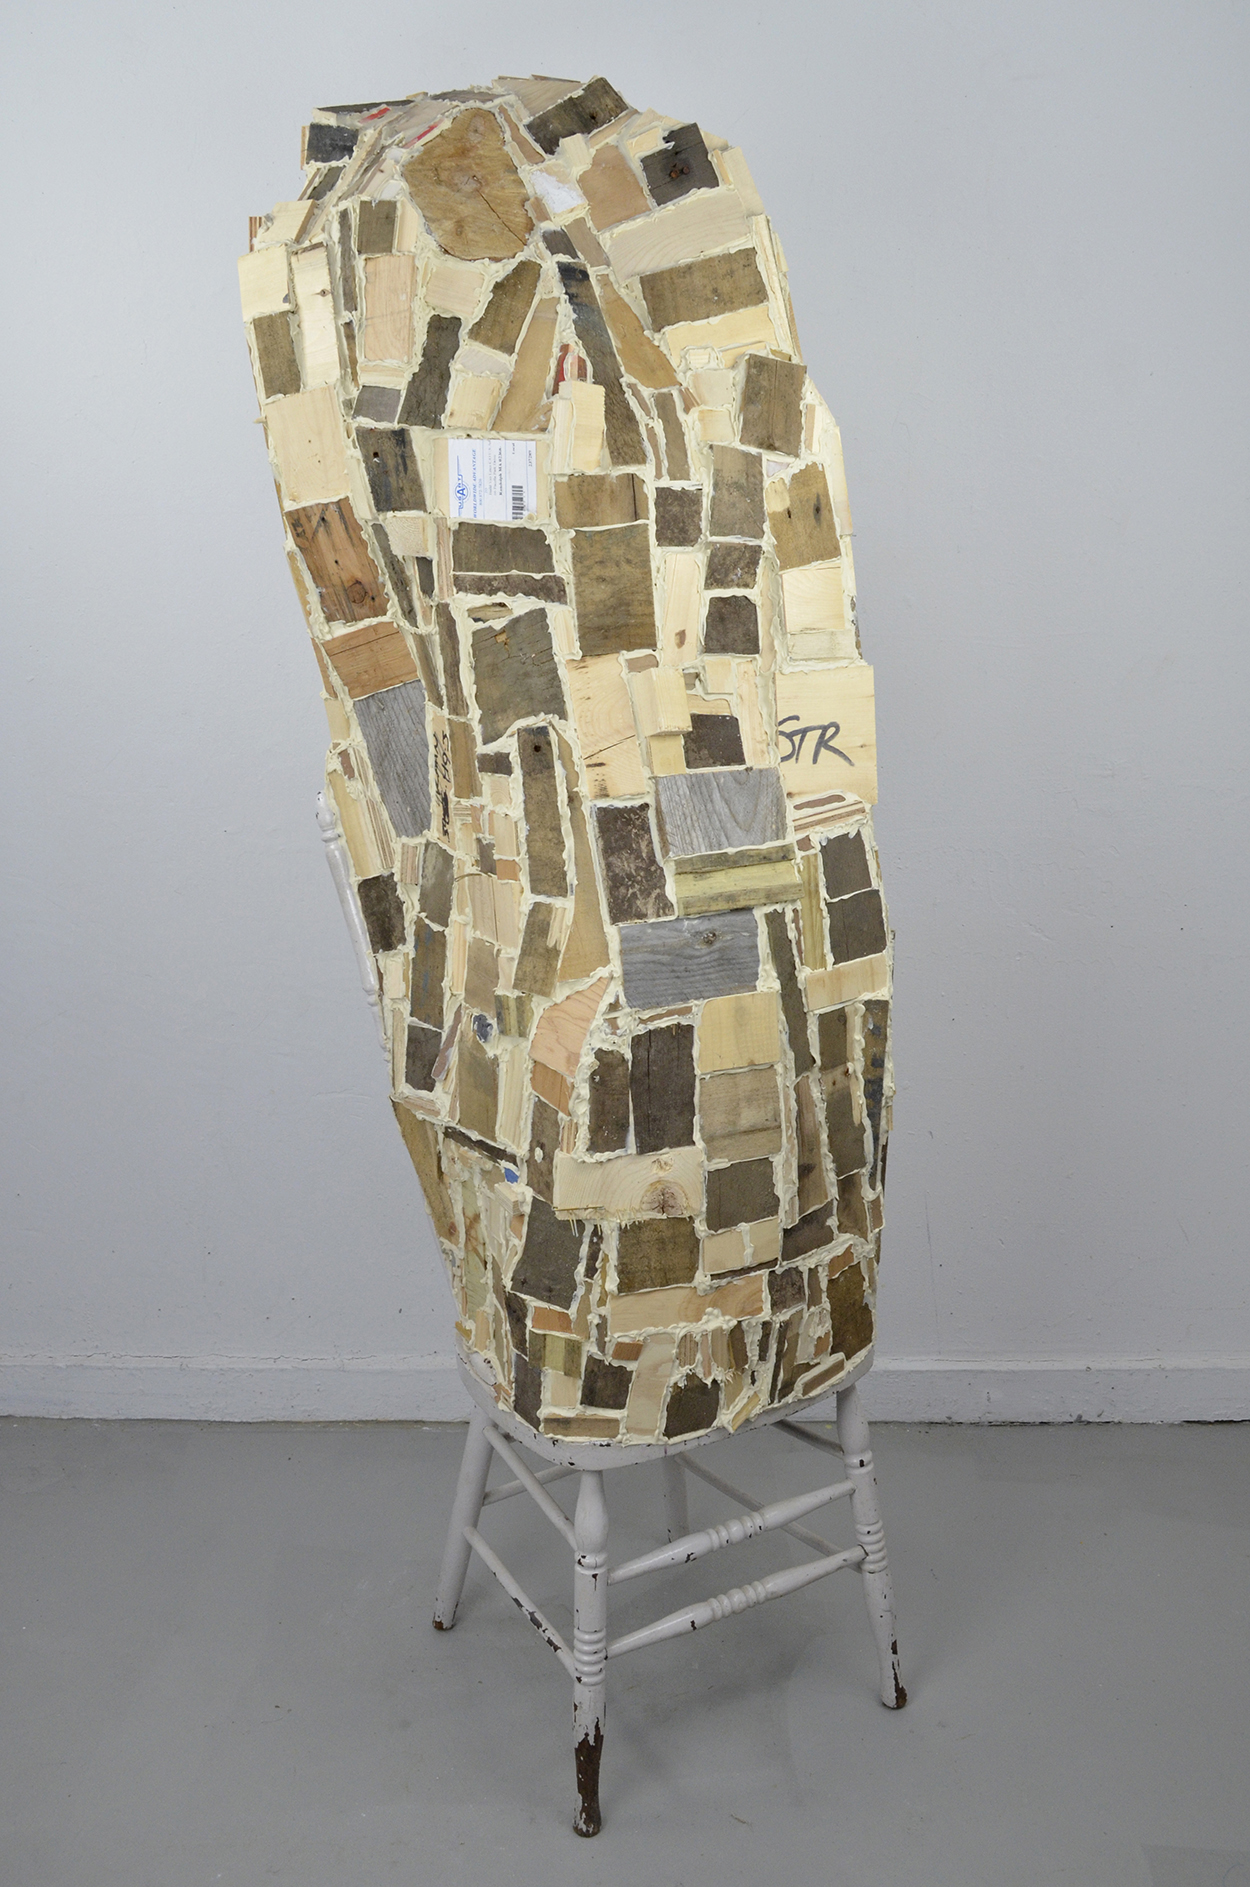 An art installation sculpture of the bottom legs of a stool with an undulating tower made of small, uneven rectangles of wood grouted together